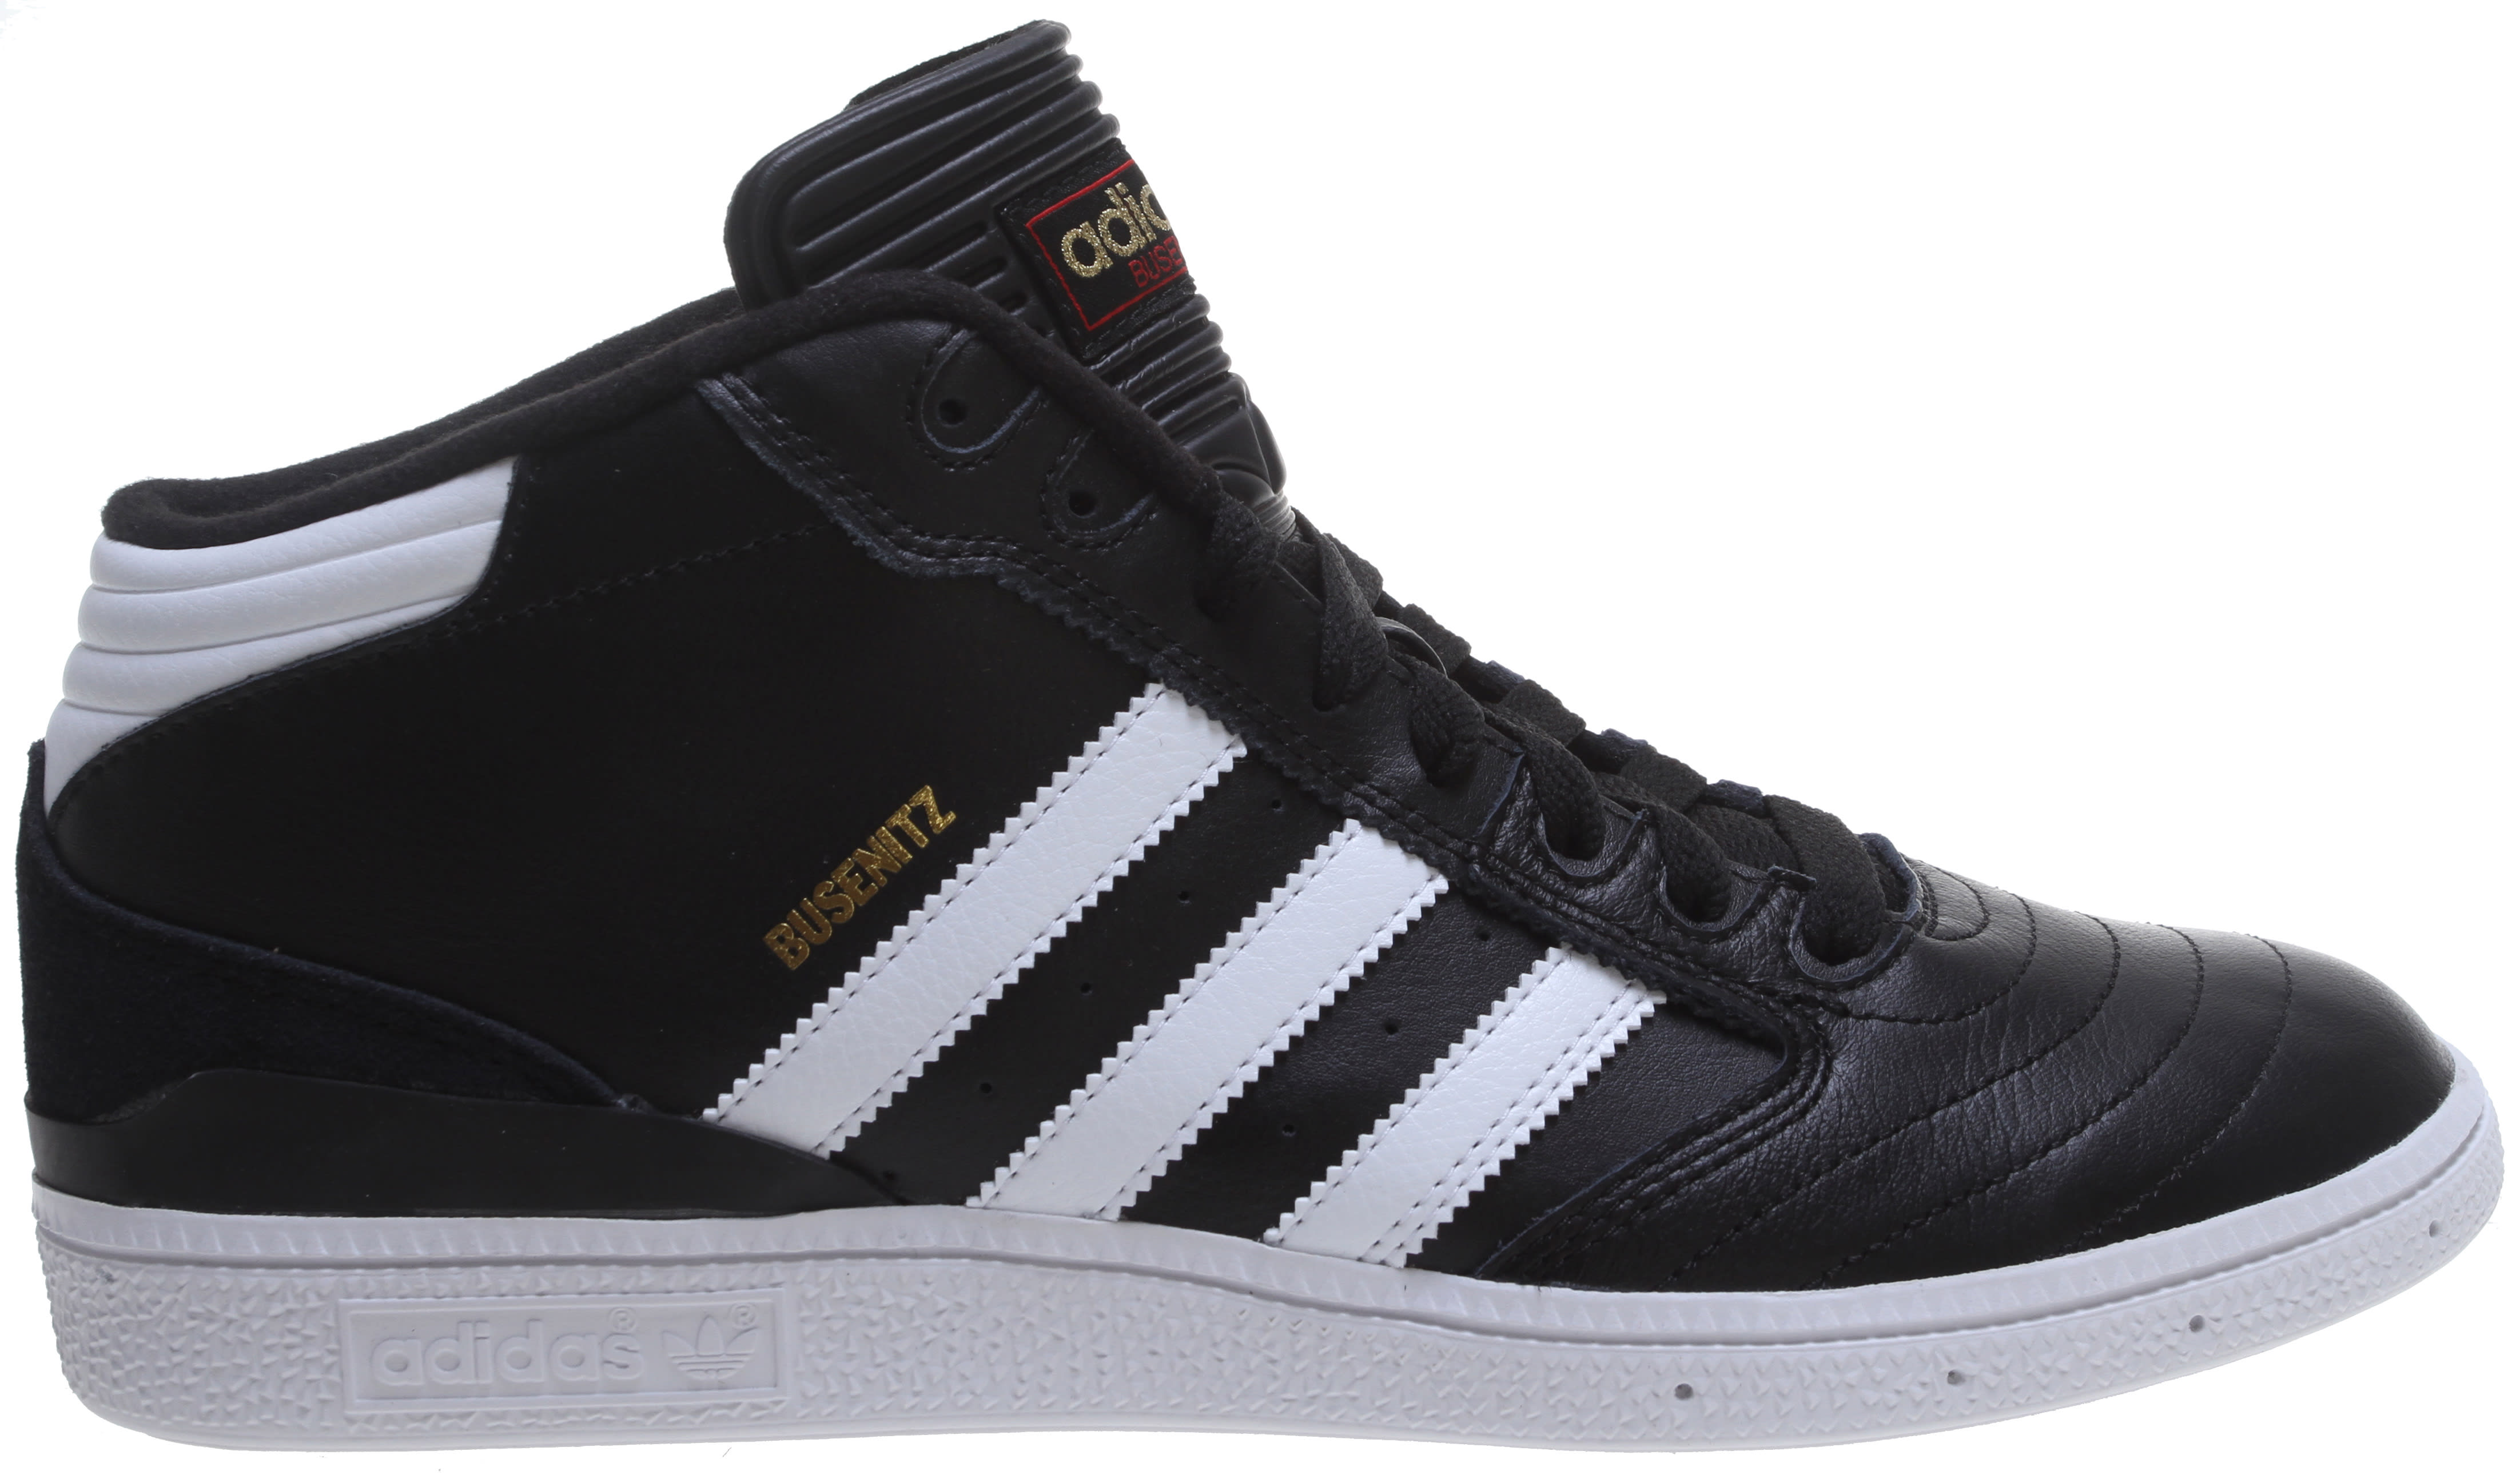 wholesale dealer b2036 240c0 Adidas Busenitz Pro Mid Skate Shoes - thumbnail 1